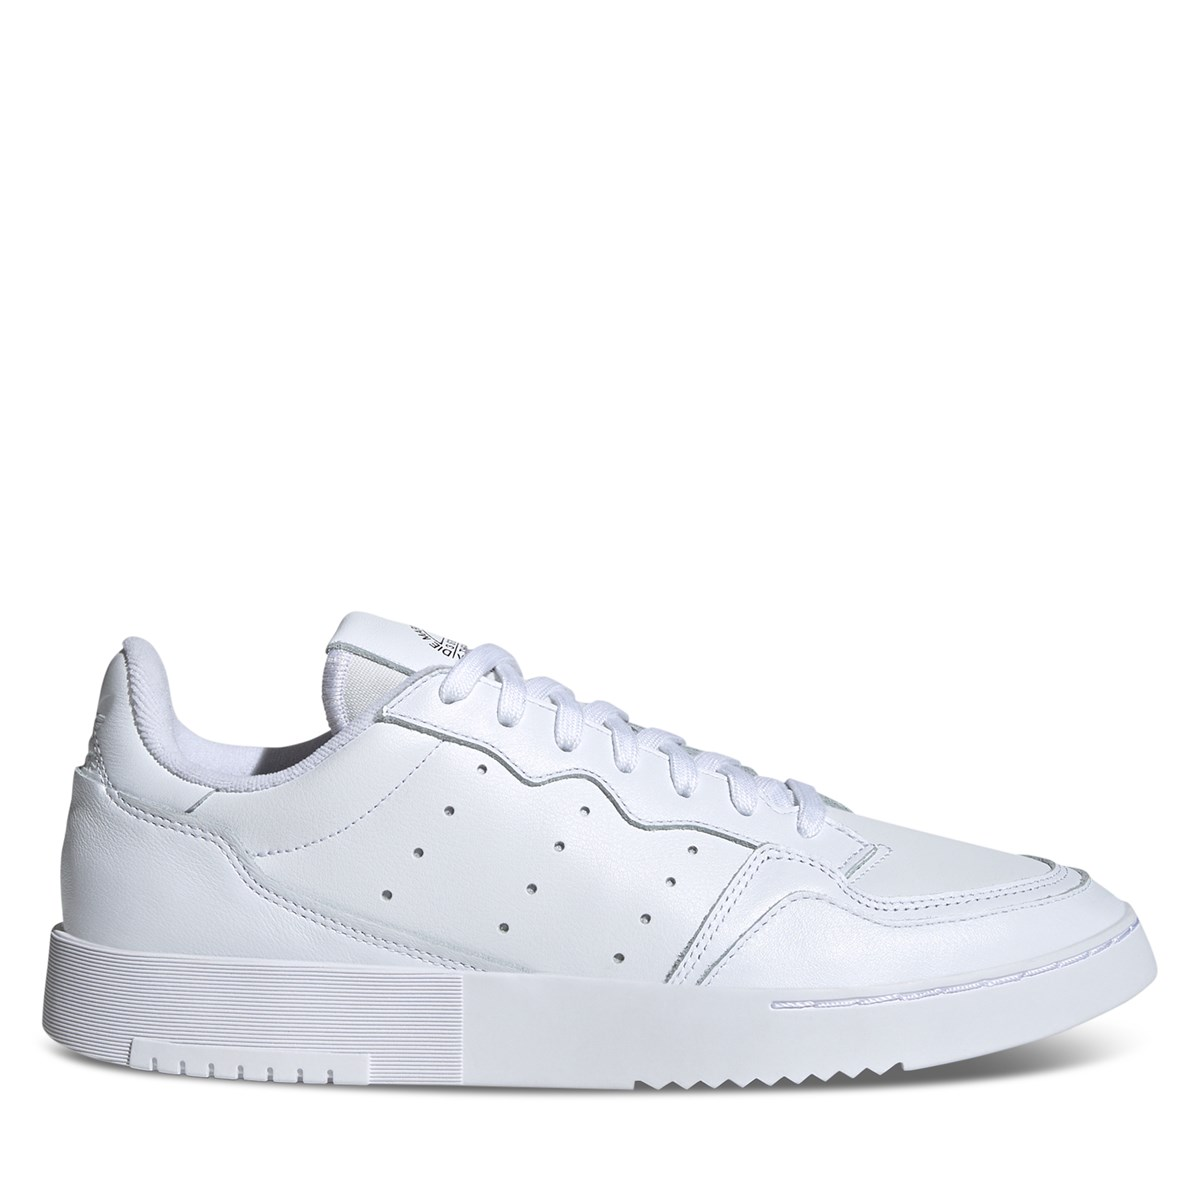 Men's Supercourt Sneakers in White